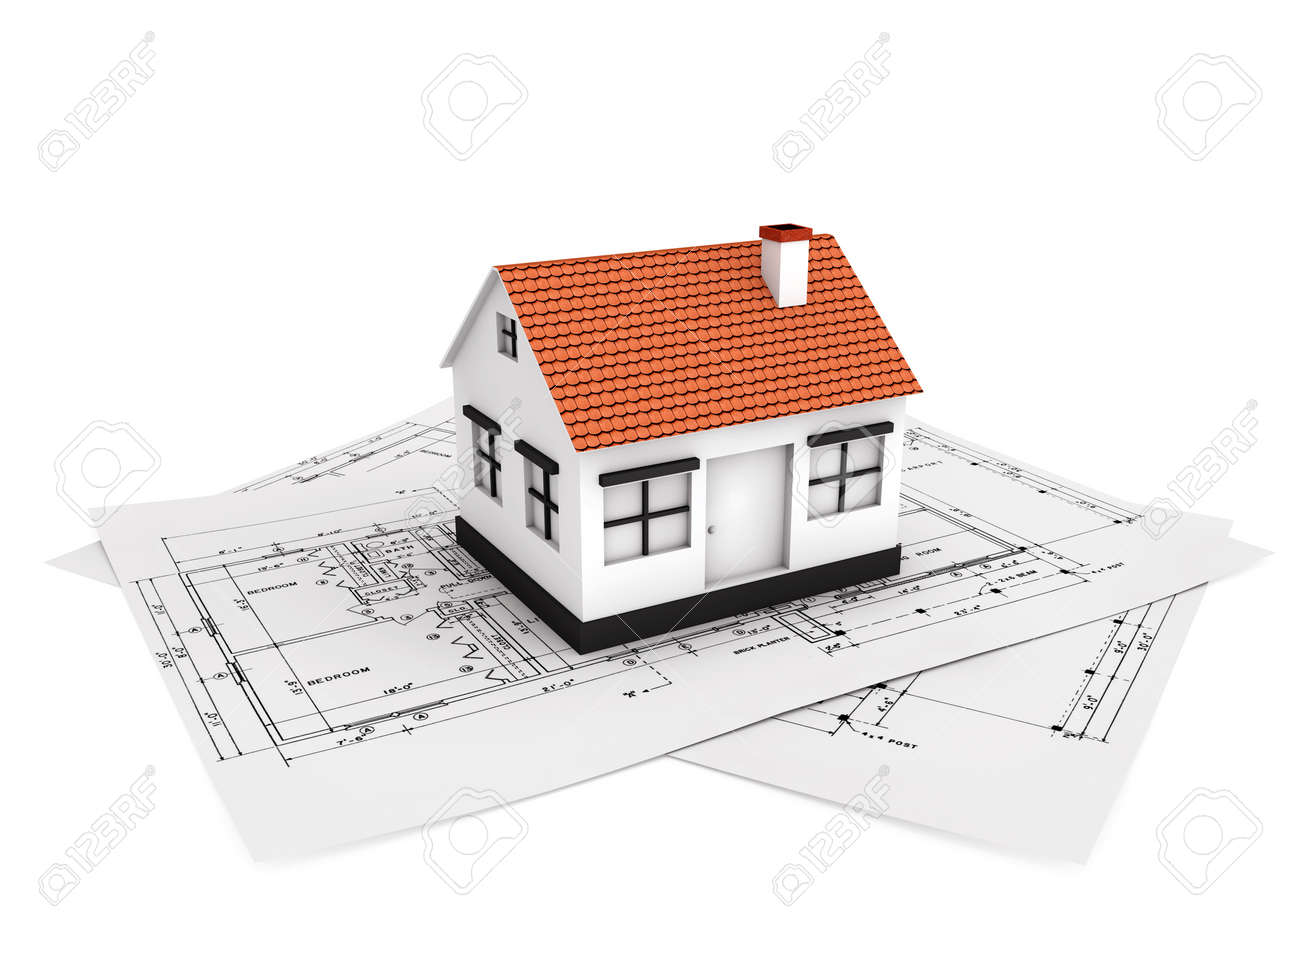 Superb Small House Model With Plan Stock Photo   14850792